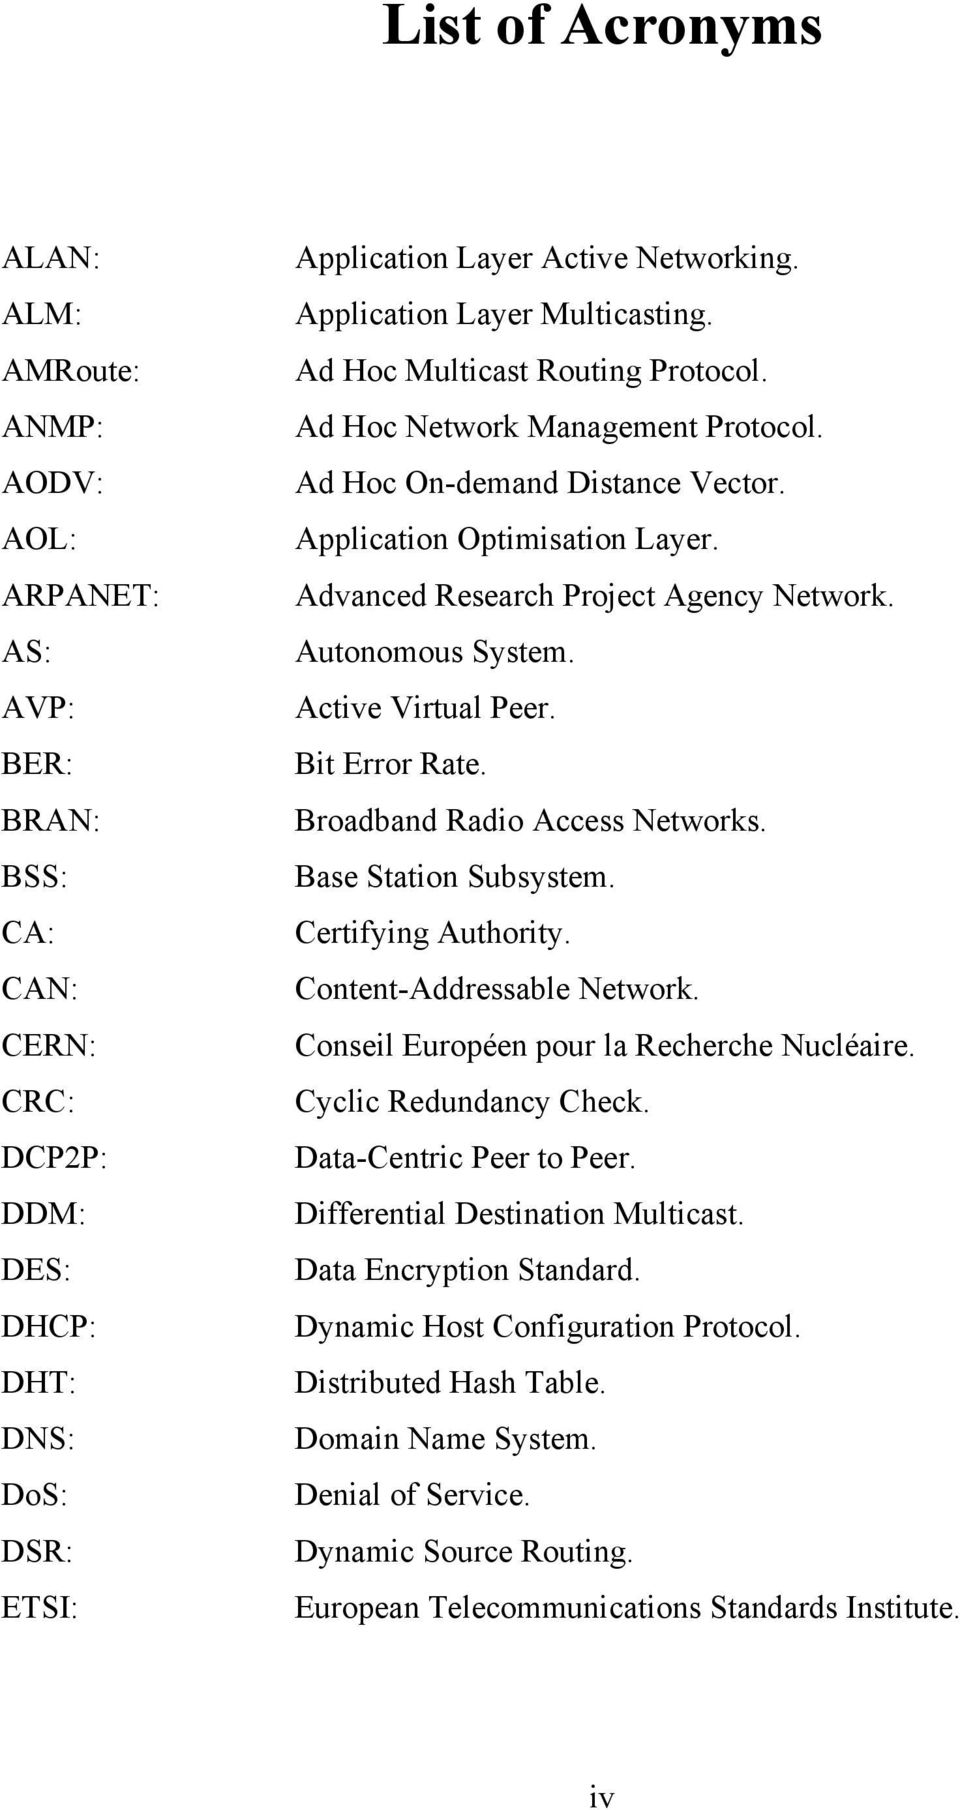 Advanced Research Project Agency Network. Autonomous System. Active Virtual Peer. Bit Error Rate. Broadband Radio Access Networks. Base Station Subsystem. Certifying Authority.